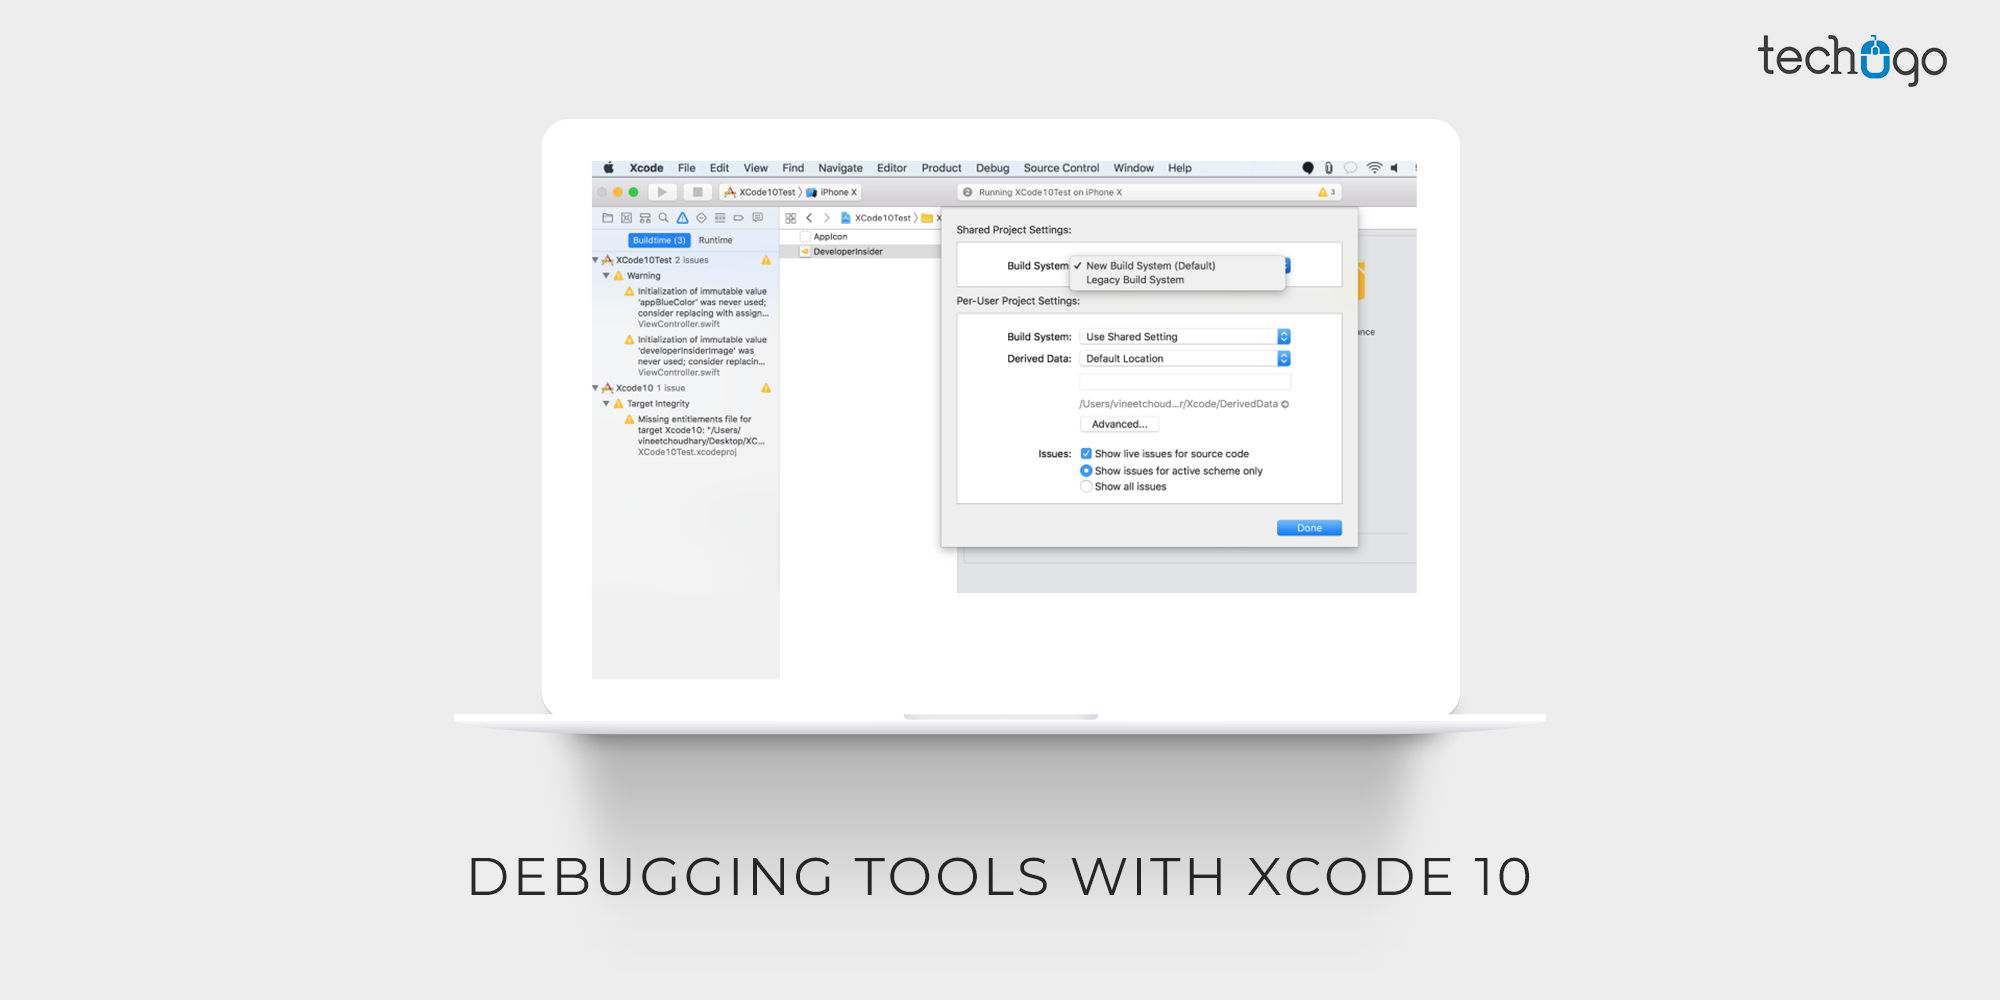 Debugging Tools With Xcode 10